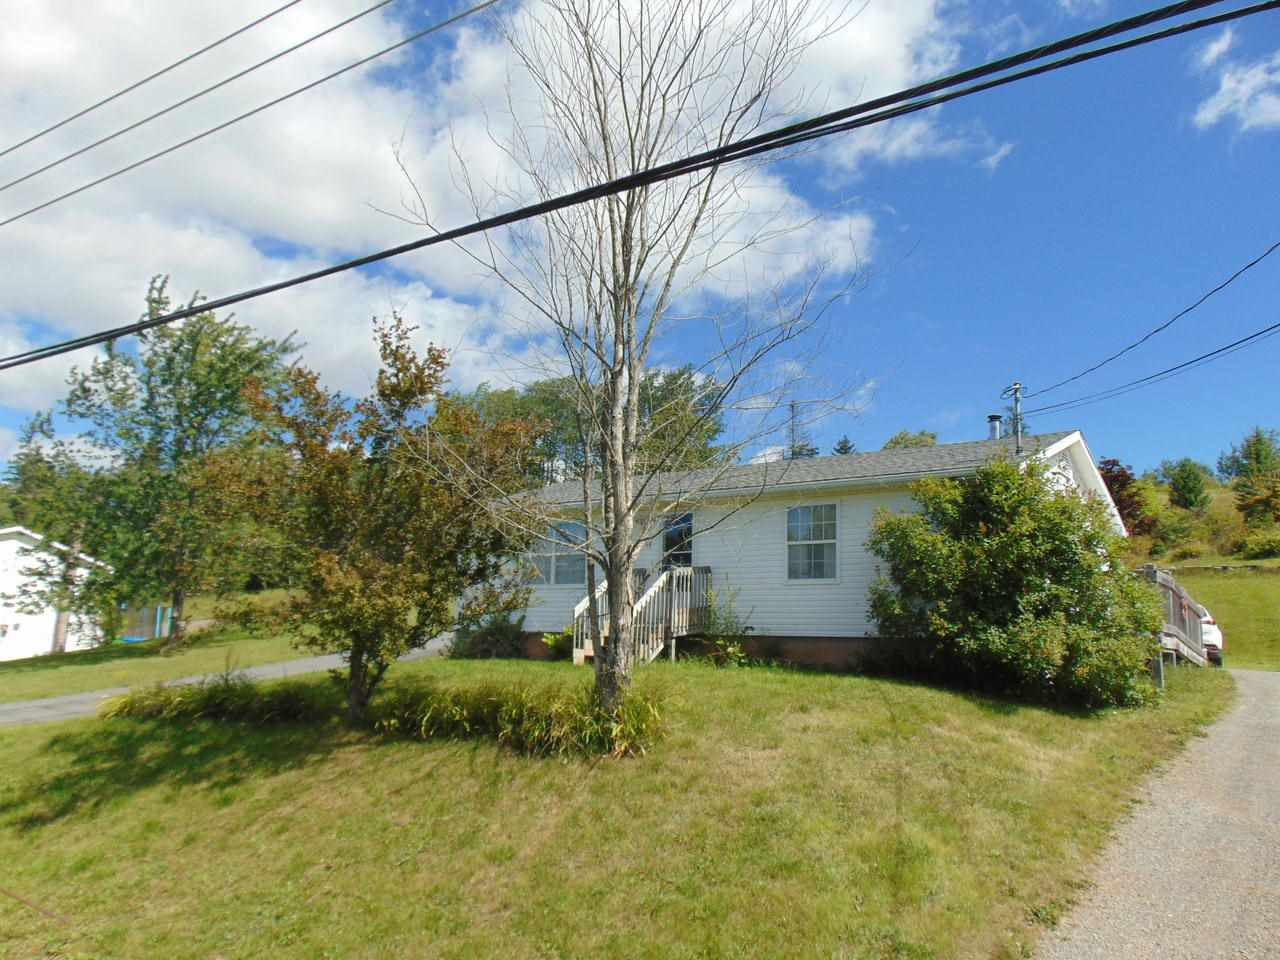 Main Photo: 98 Underwood Road in Garlands Crossing: 403-Hants County Residential for sale (Annapolis Valley)  : MLS®# 202017150